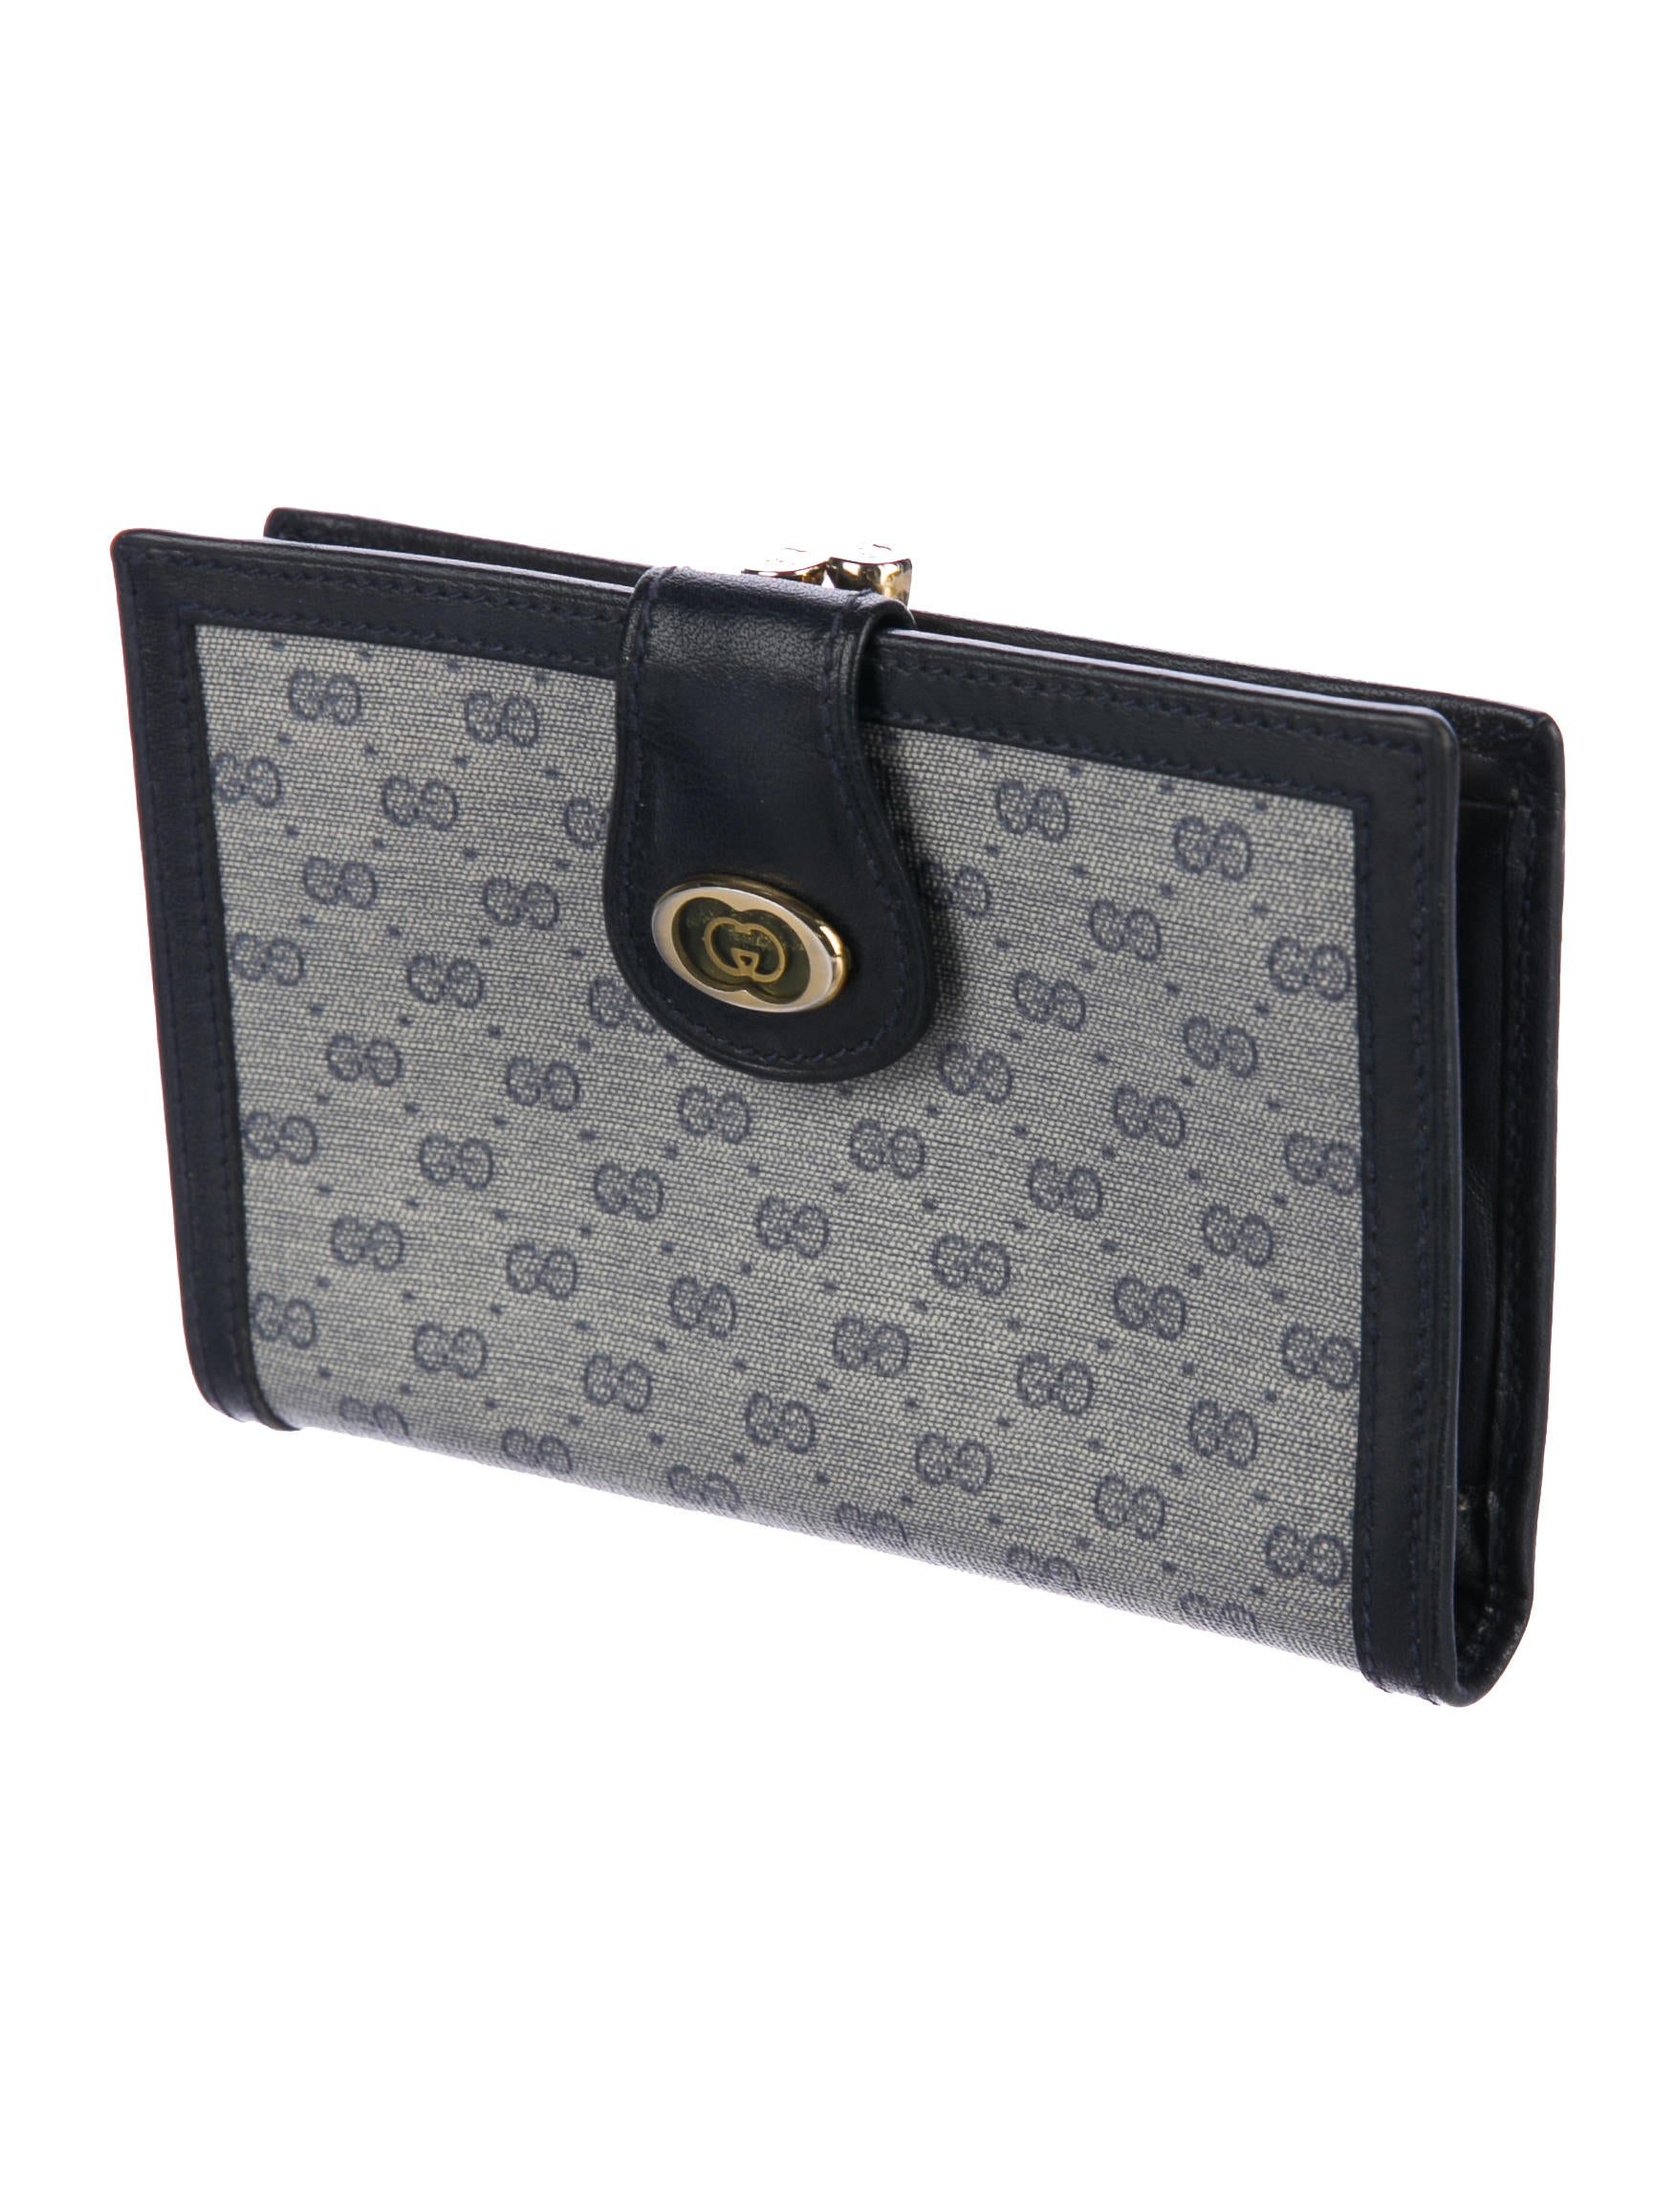 7a933f40773673 Vintage Gucci Wallets Women | Stanford Center for Opportunity Policy ...